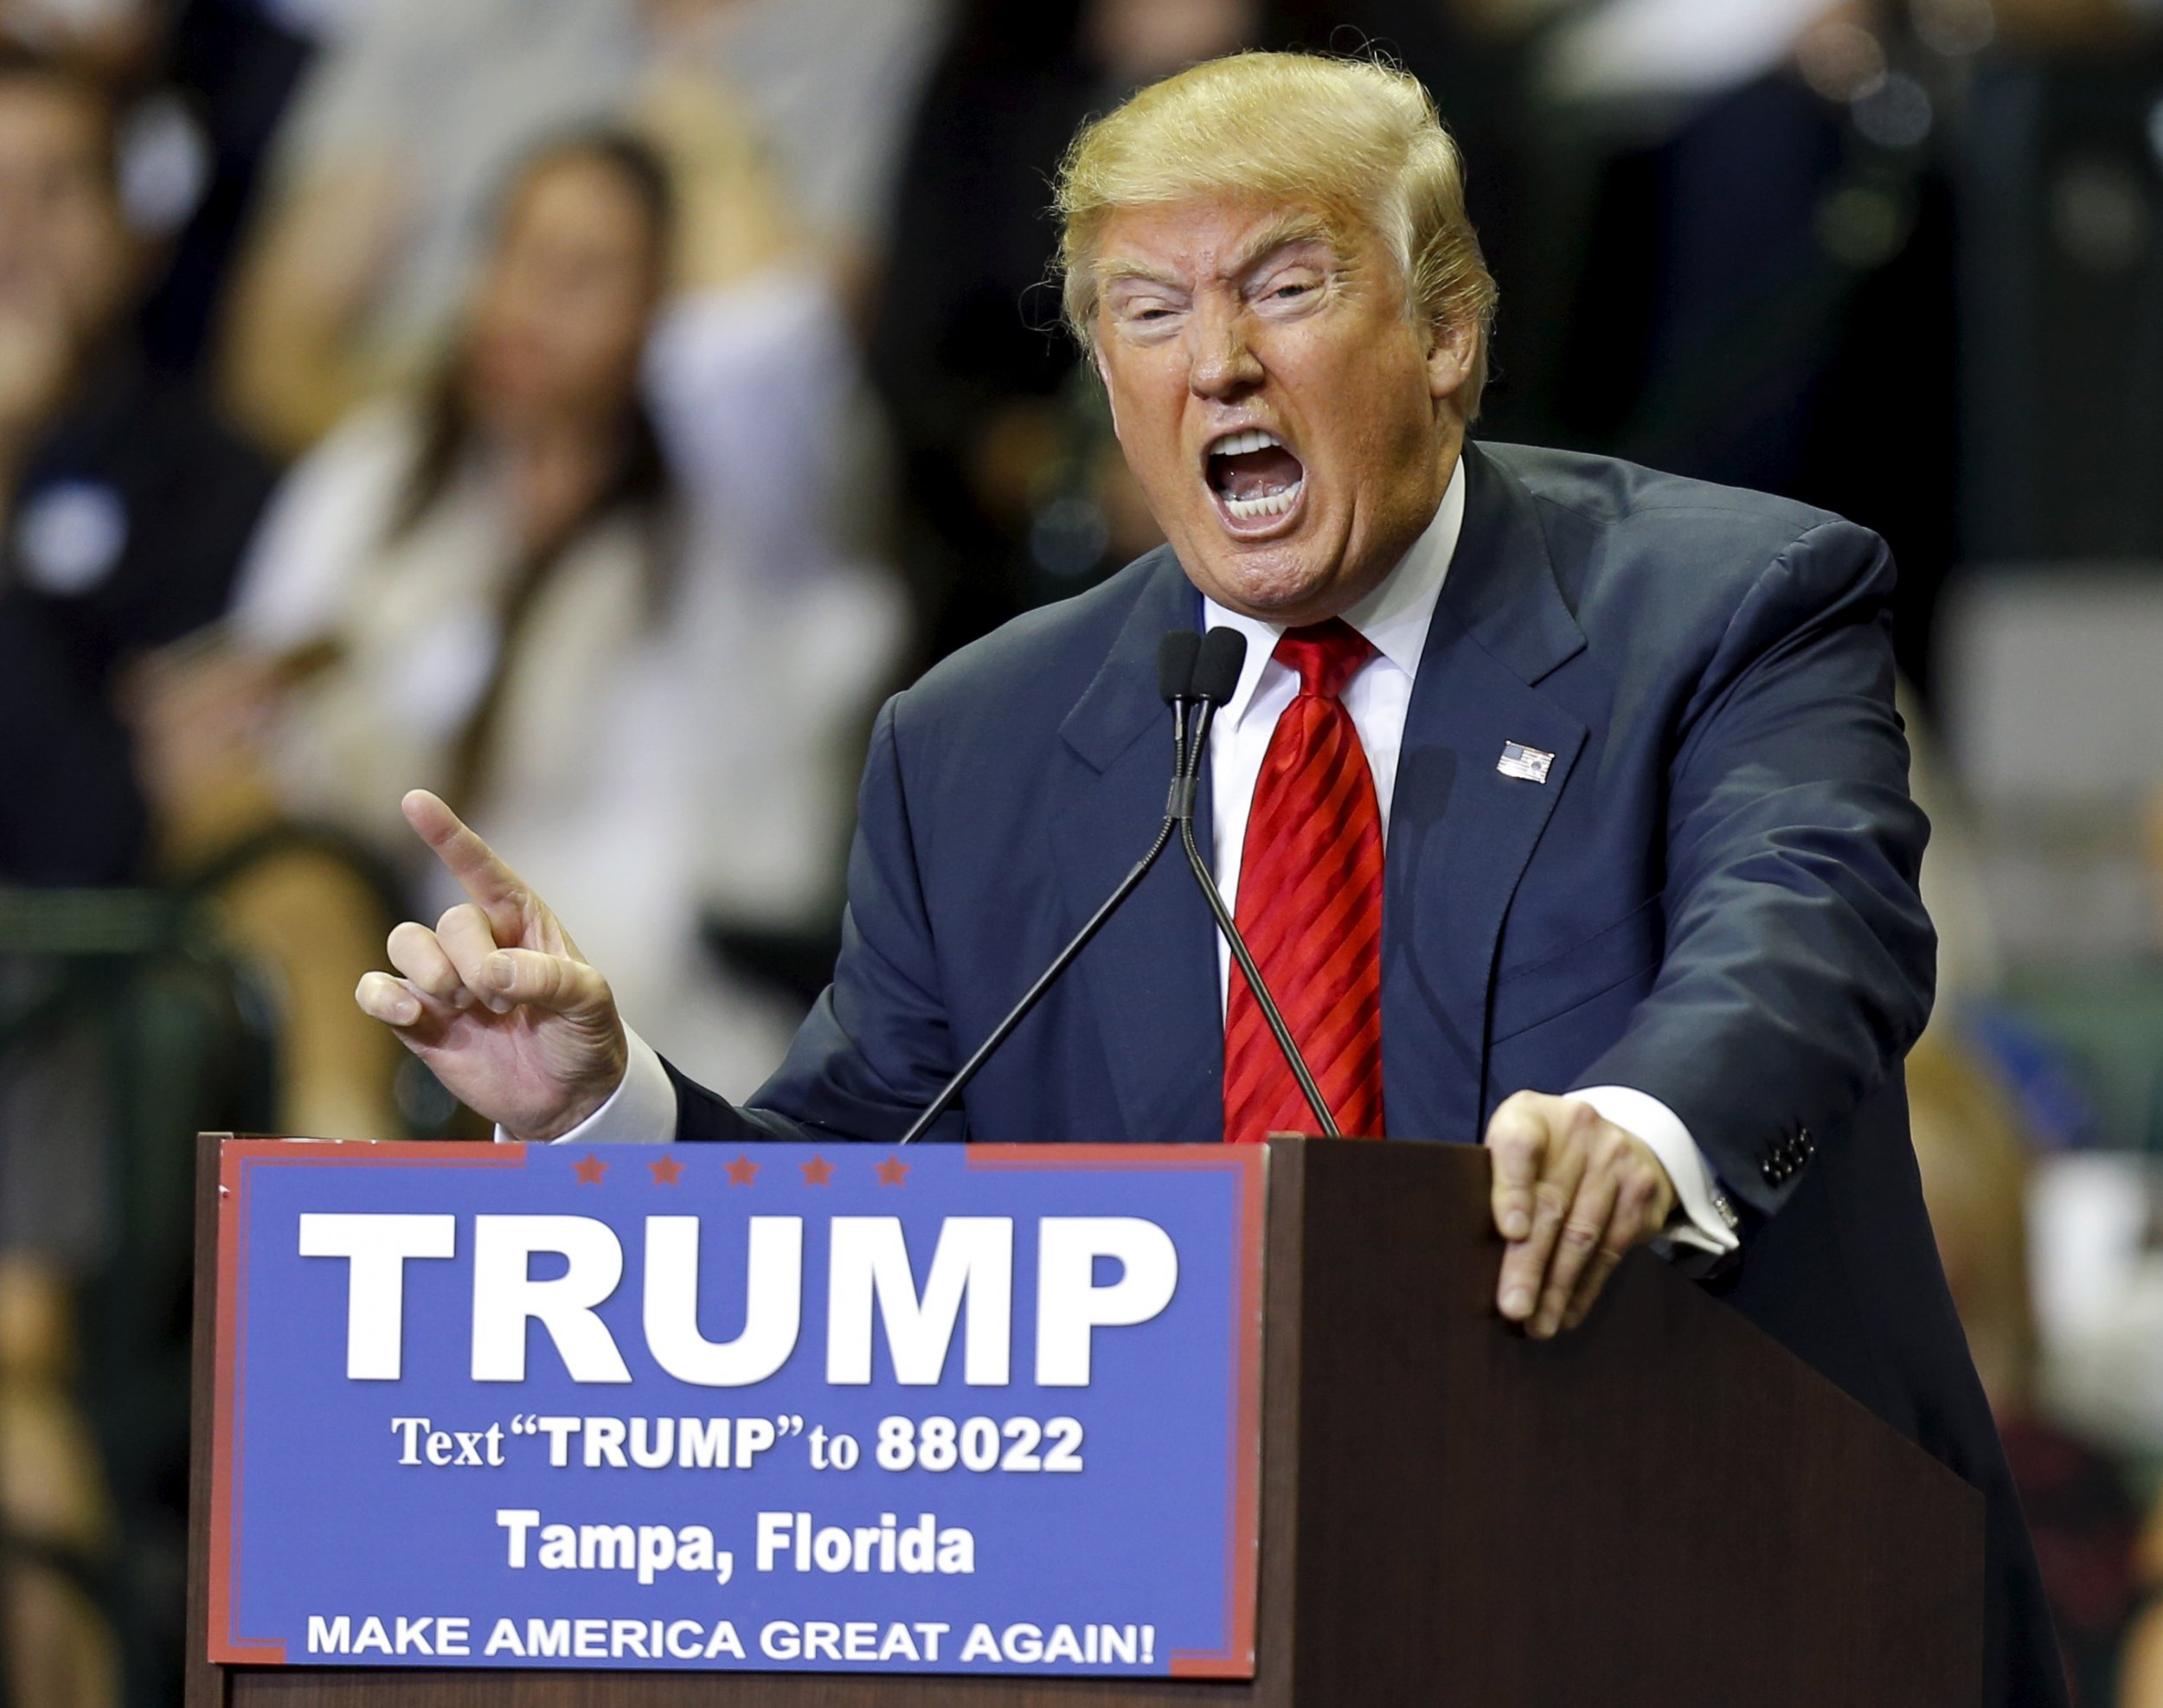 Donald Trump speaks at Florida rally